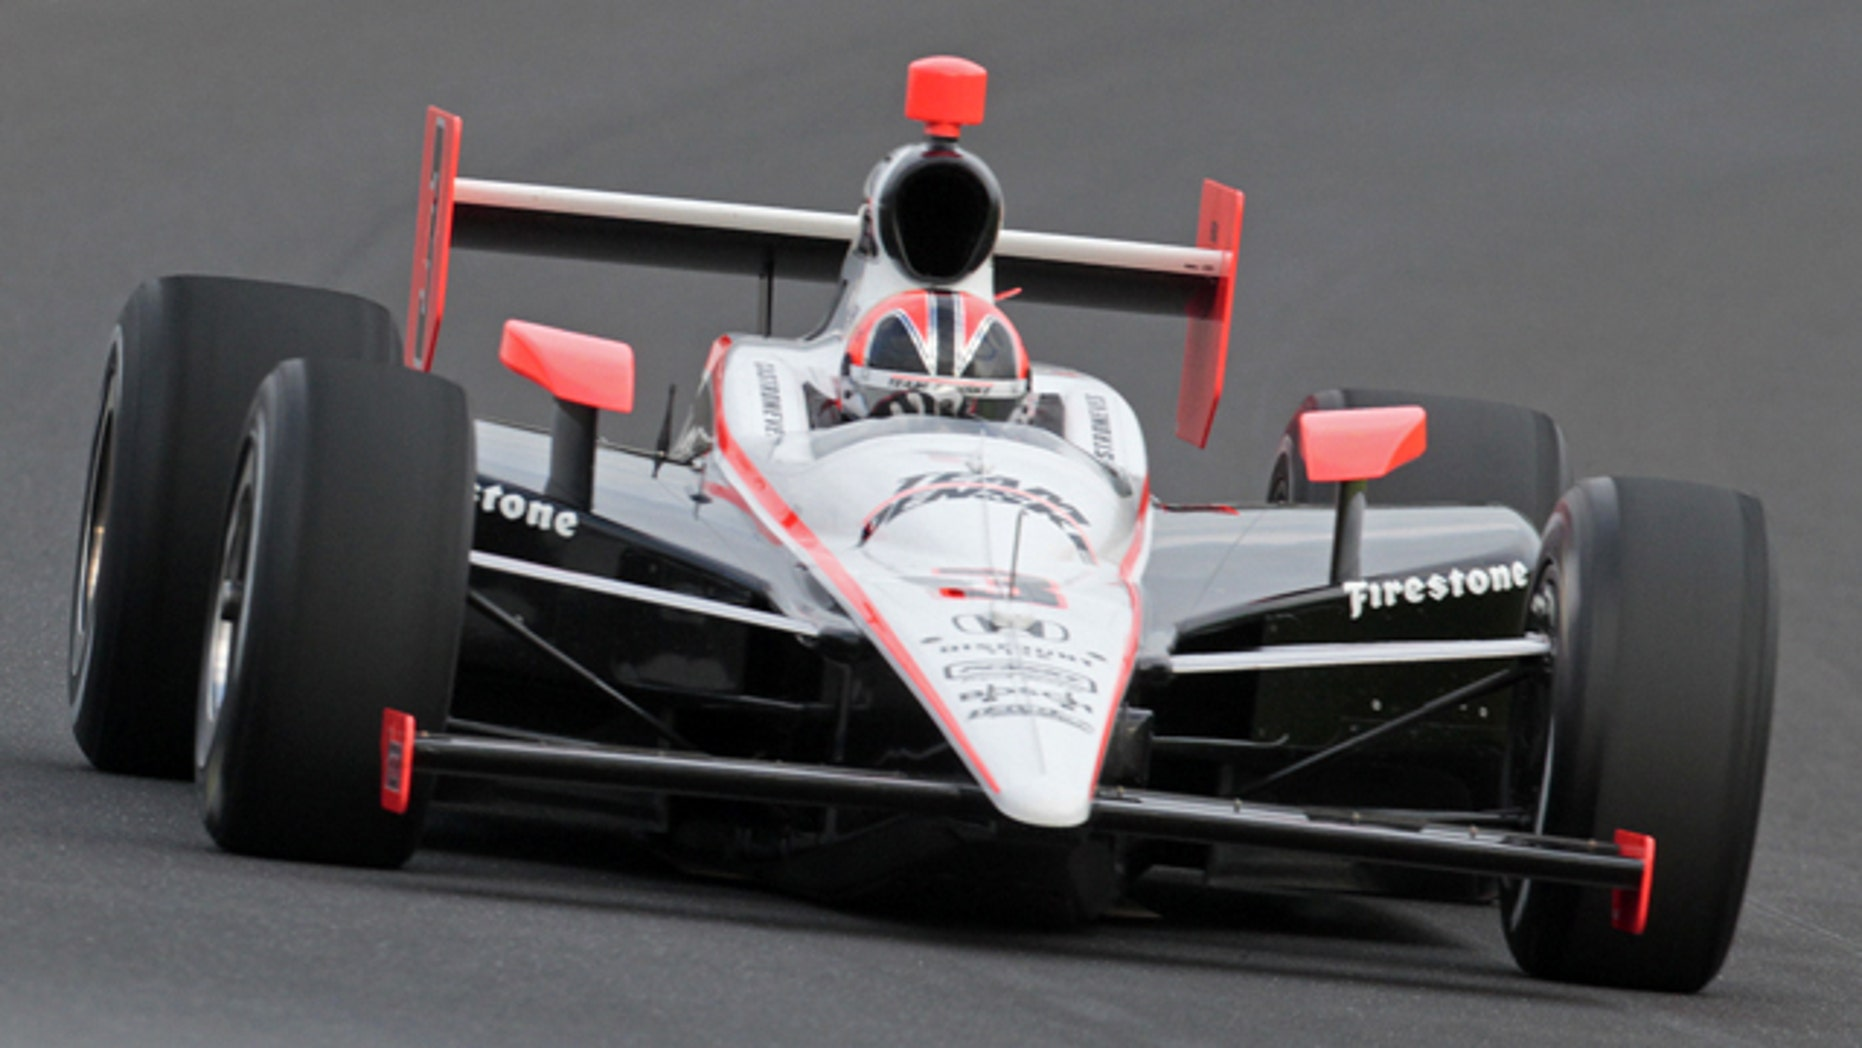 Helio Castroneves makes a qualifying run at the Indianapolis Motor Speedway